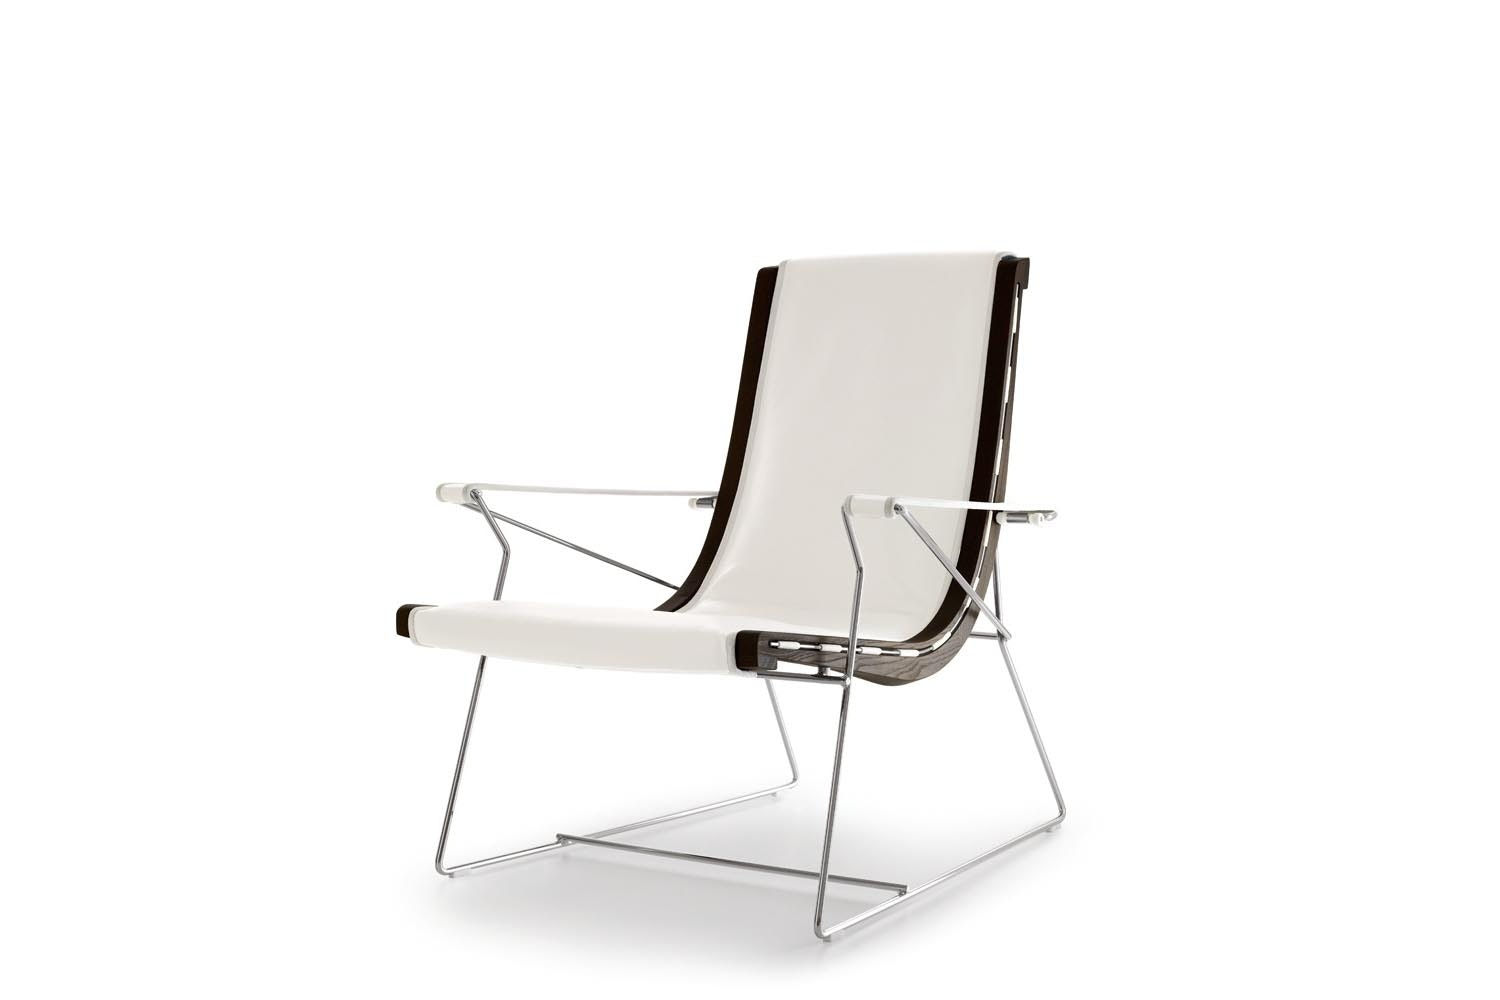 J.J. Armchair by Antonio Citterio for B&B Italia